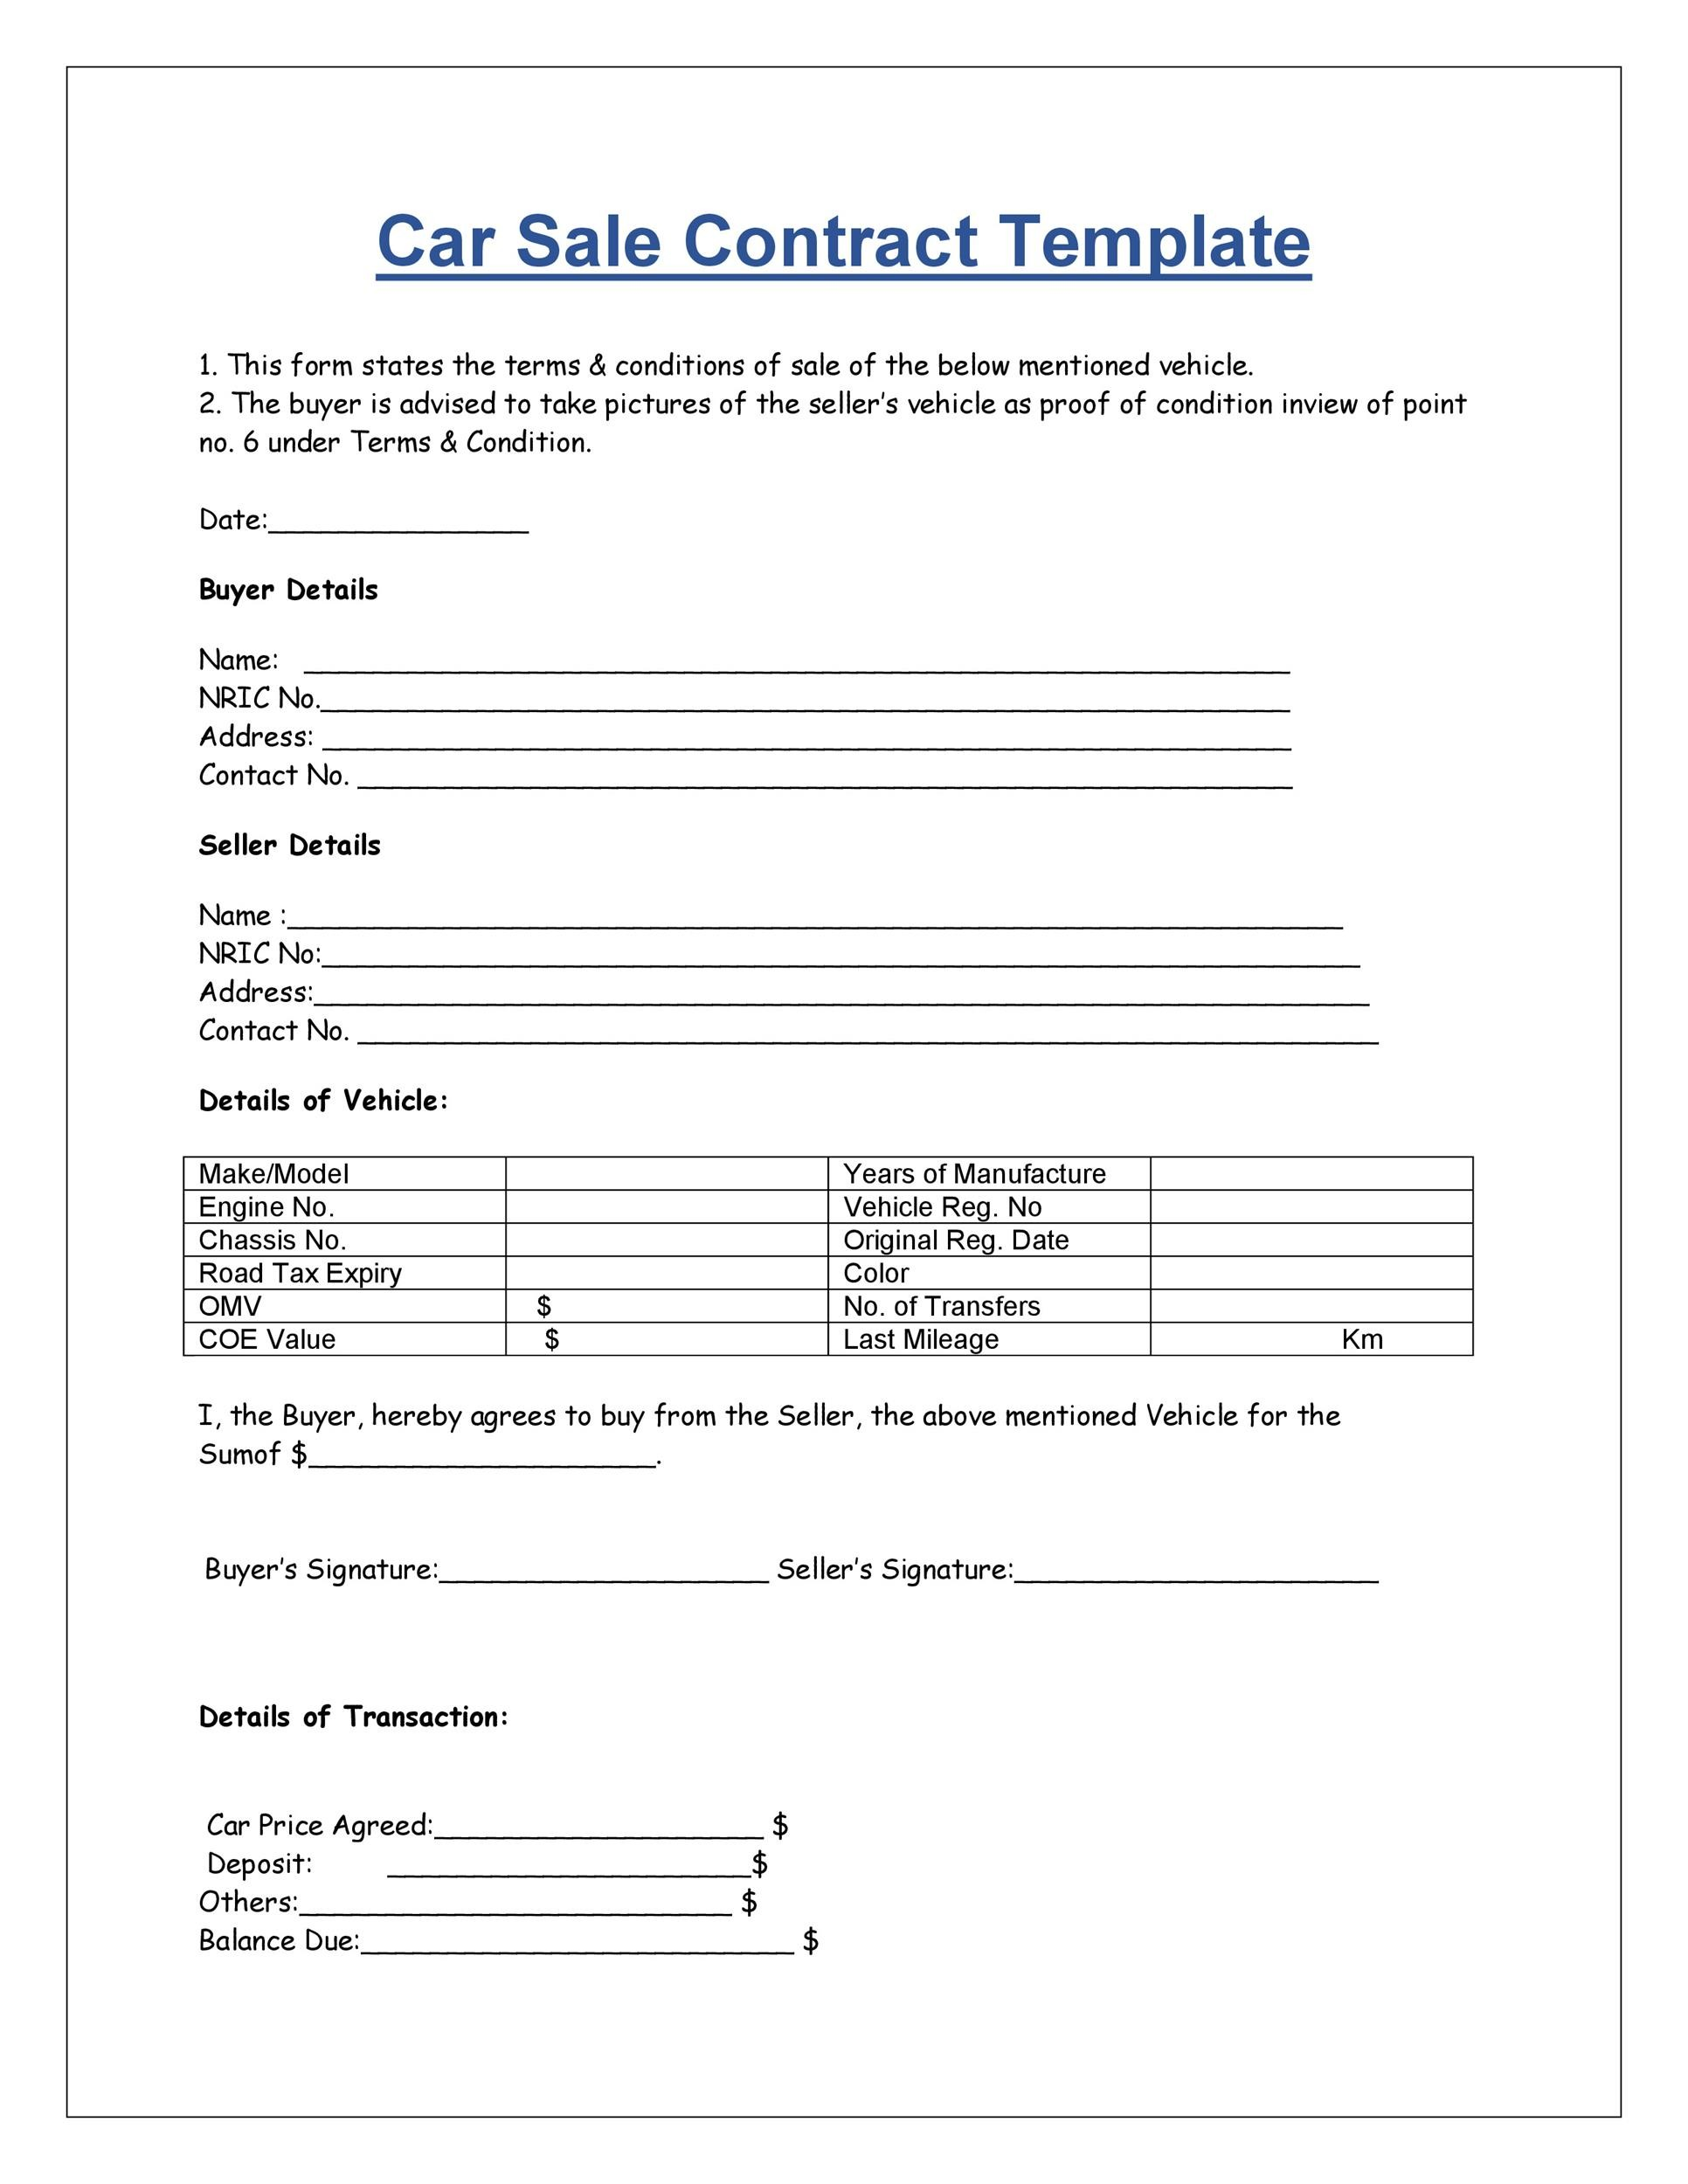 42 Printable Vehicle Purchase Agreement Templates - Template Lab